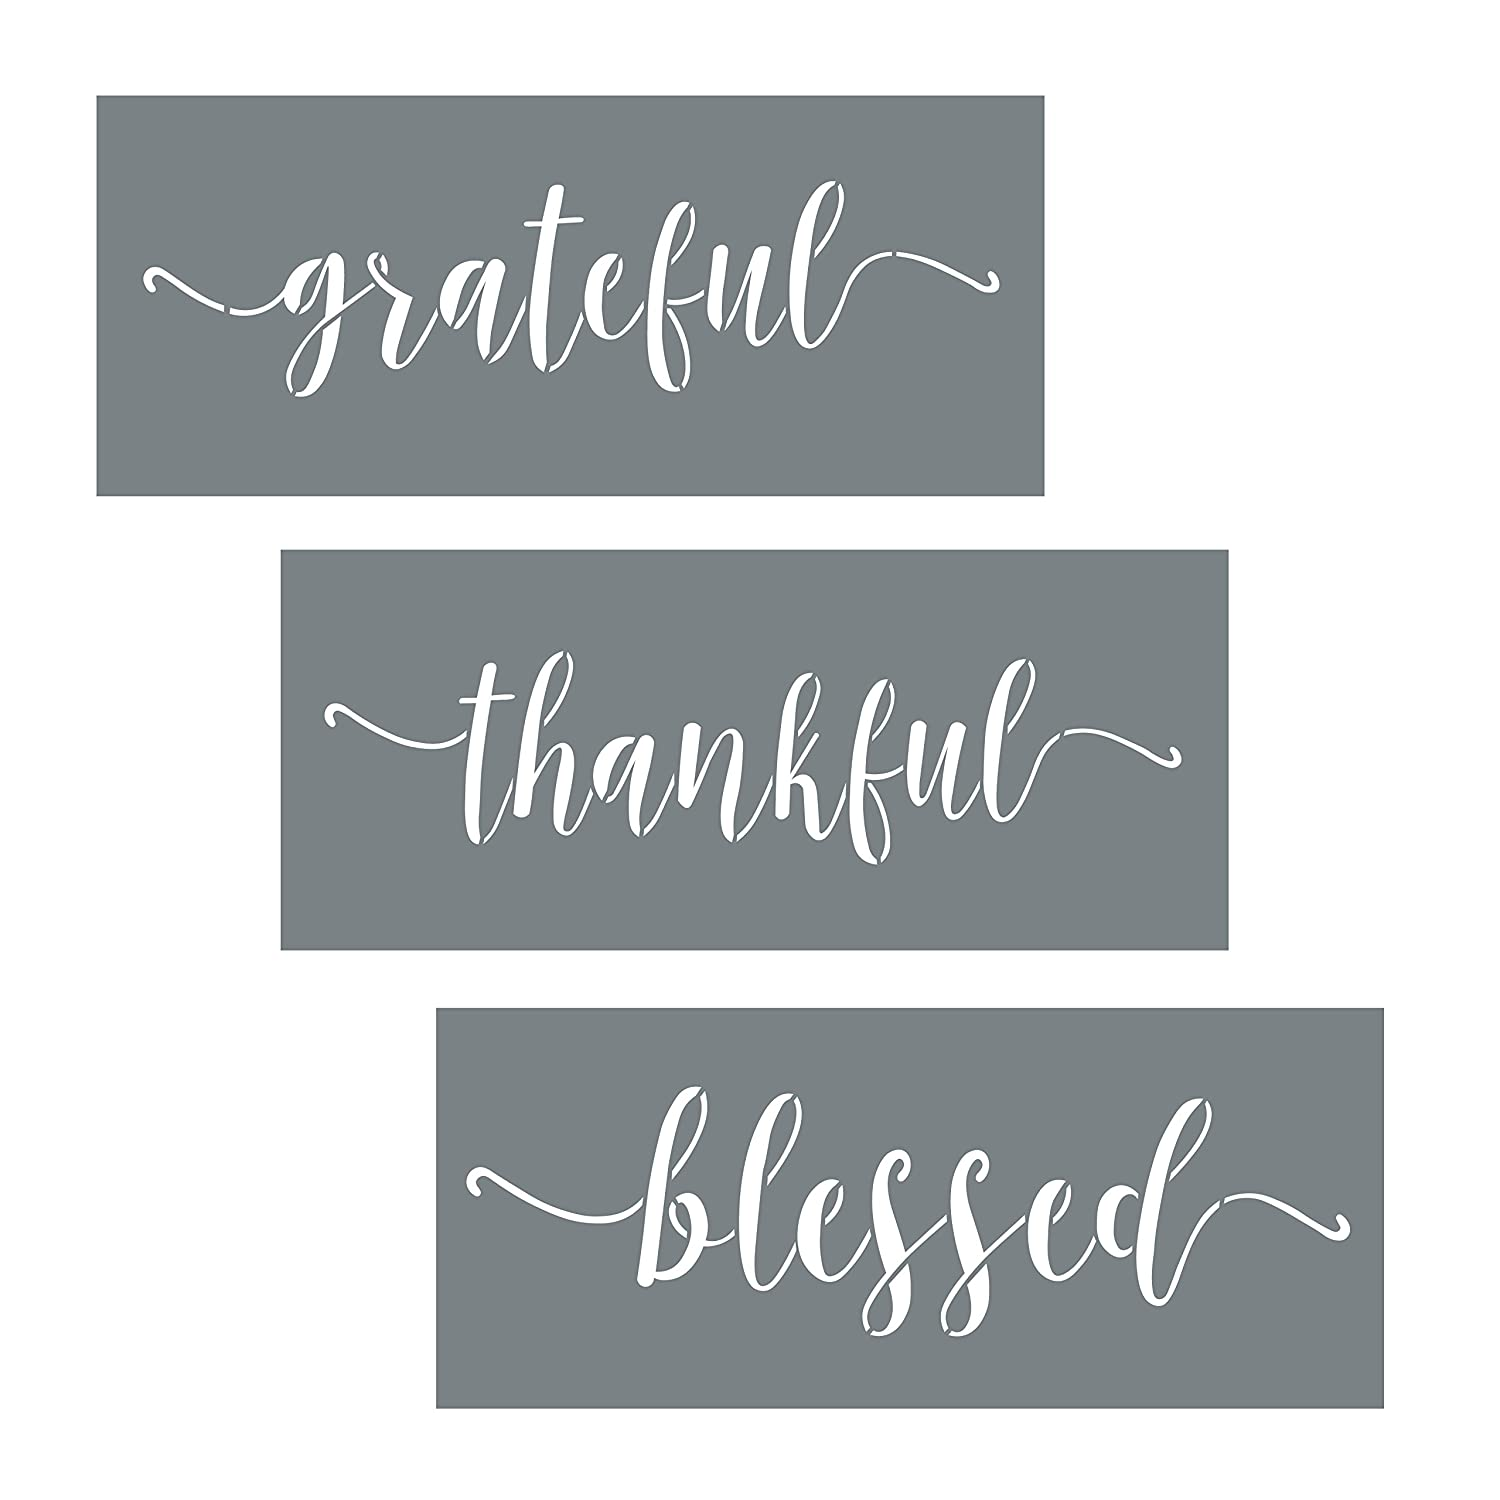 Grateful Thankful Blessed Stencil Set - 3 Reusable Sign Stencils For Painting on Wood + More - Use a Wall Stencil to Make Modern DIY Home Decor - Quote Stencils Made of 10 Mil Mylar - Wood Stencils